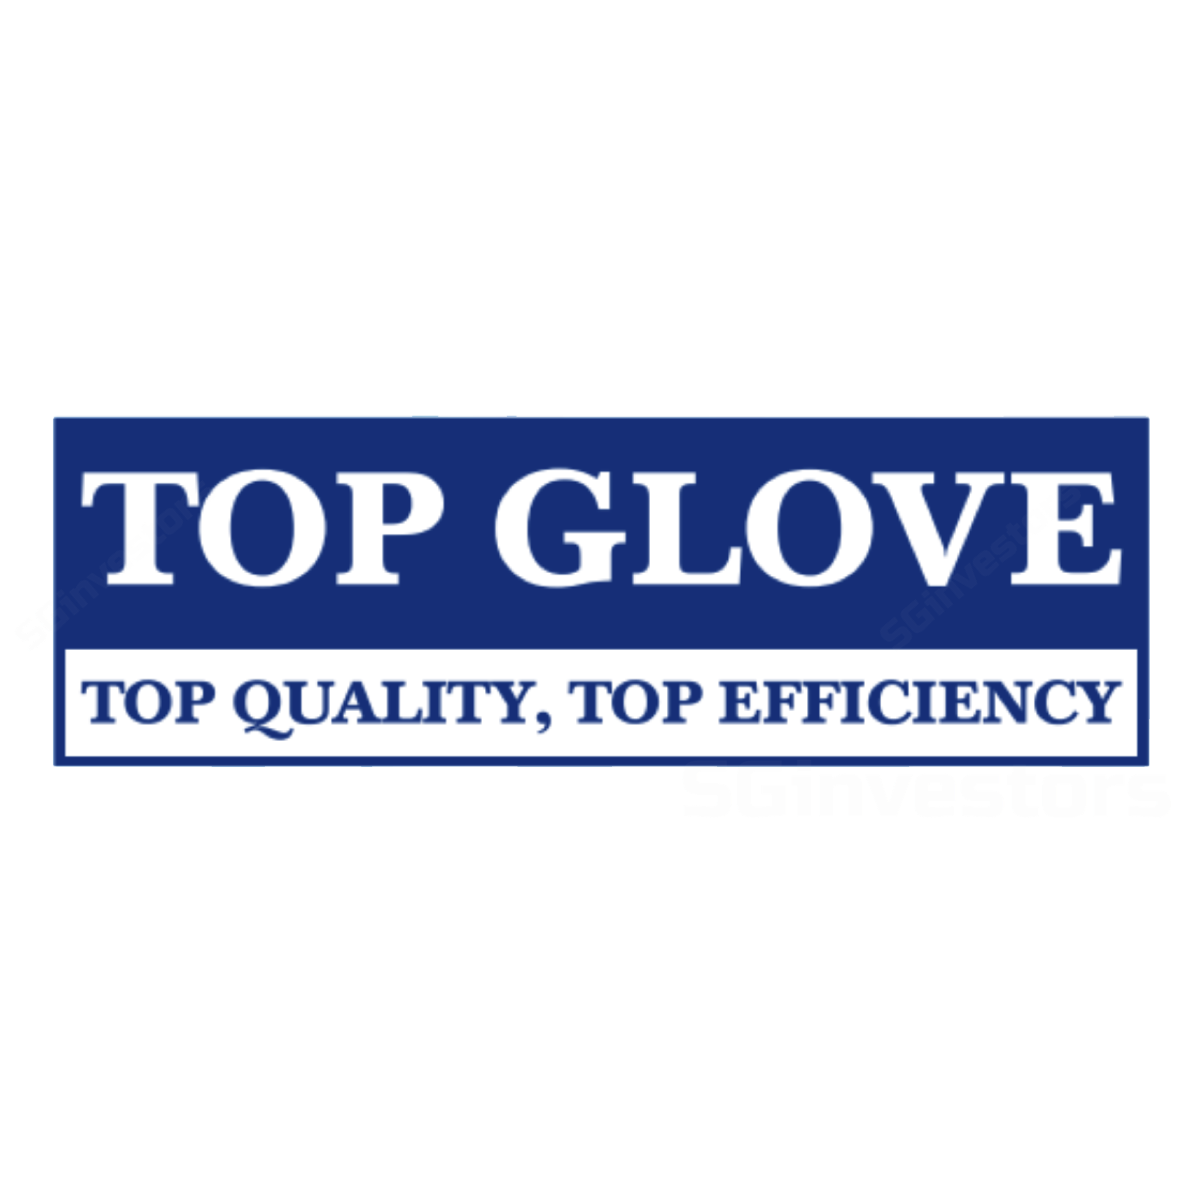 Top Glove (TOPG MK - Maybank Kim Eng 2018-06-19: Room For Further Re-rating